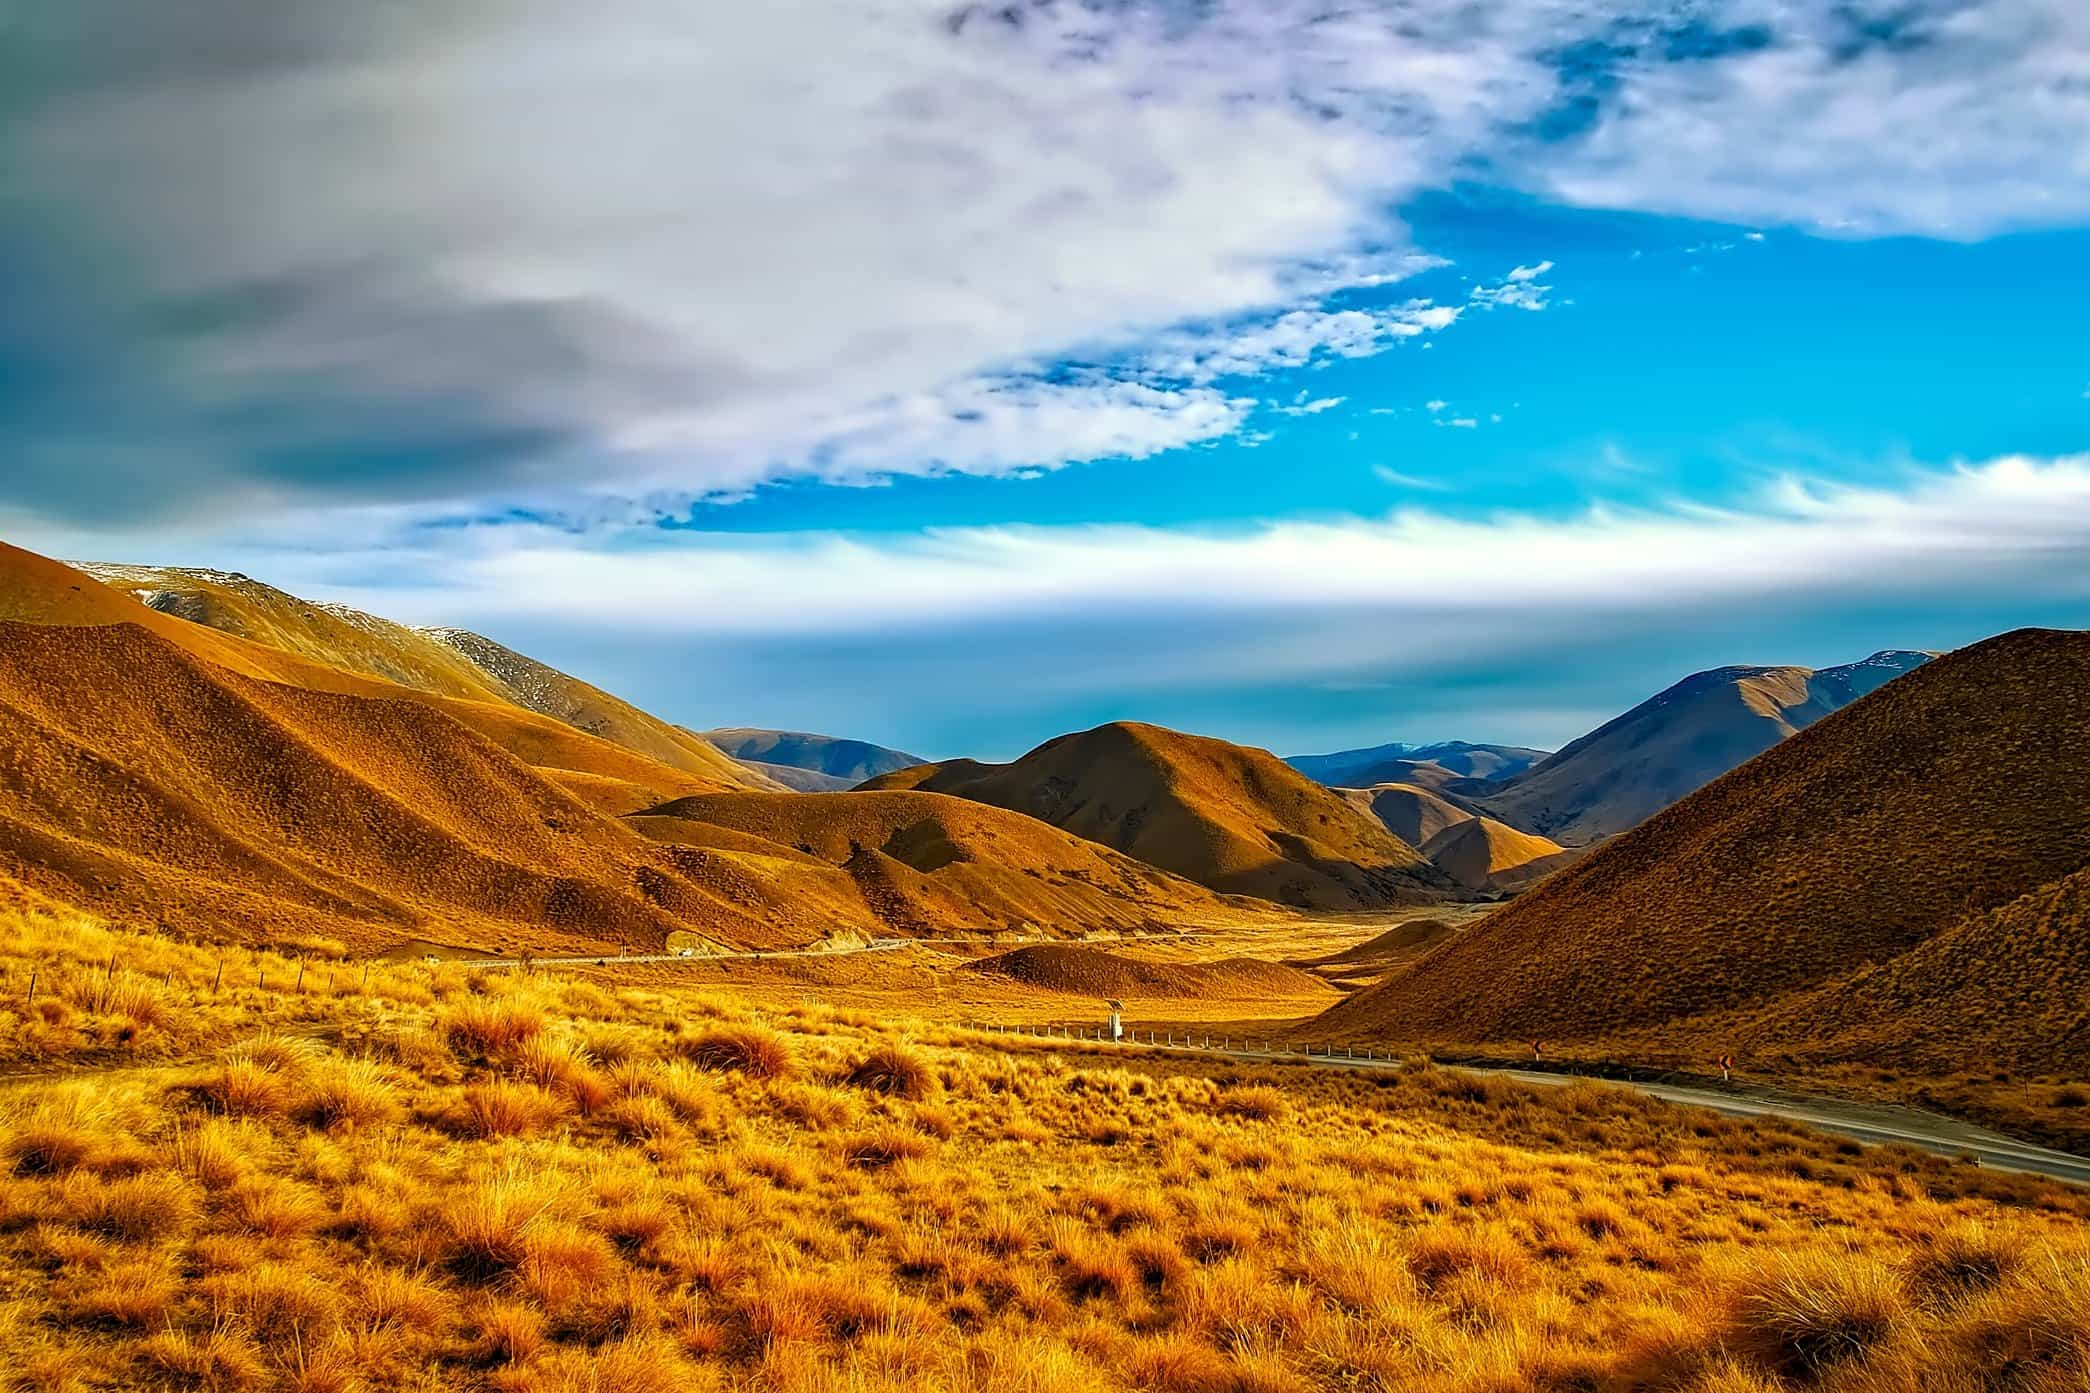 Free picture landscape desert sky mountain blue sky canyon valley outdoor